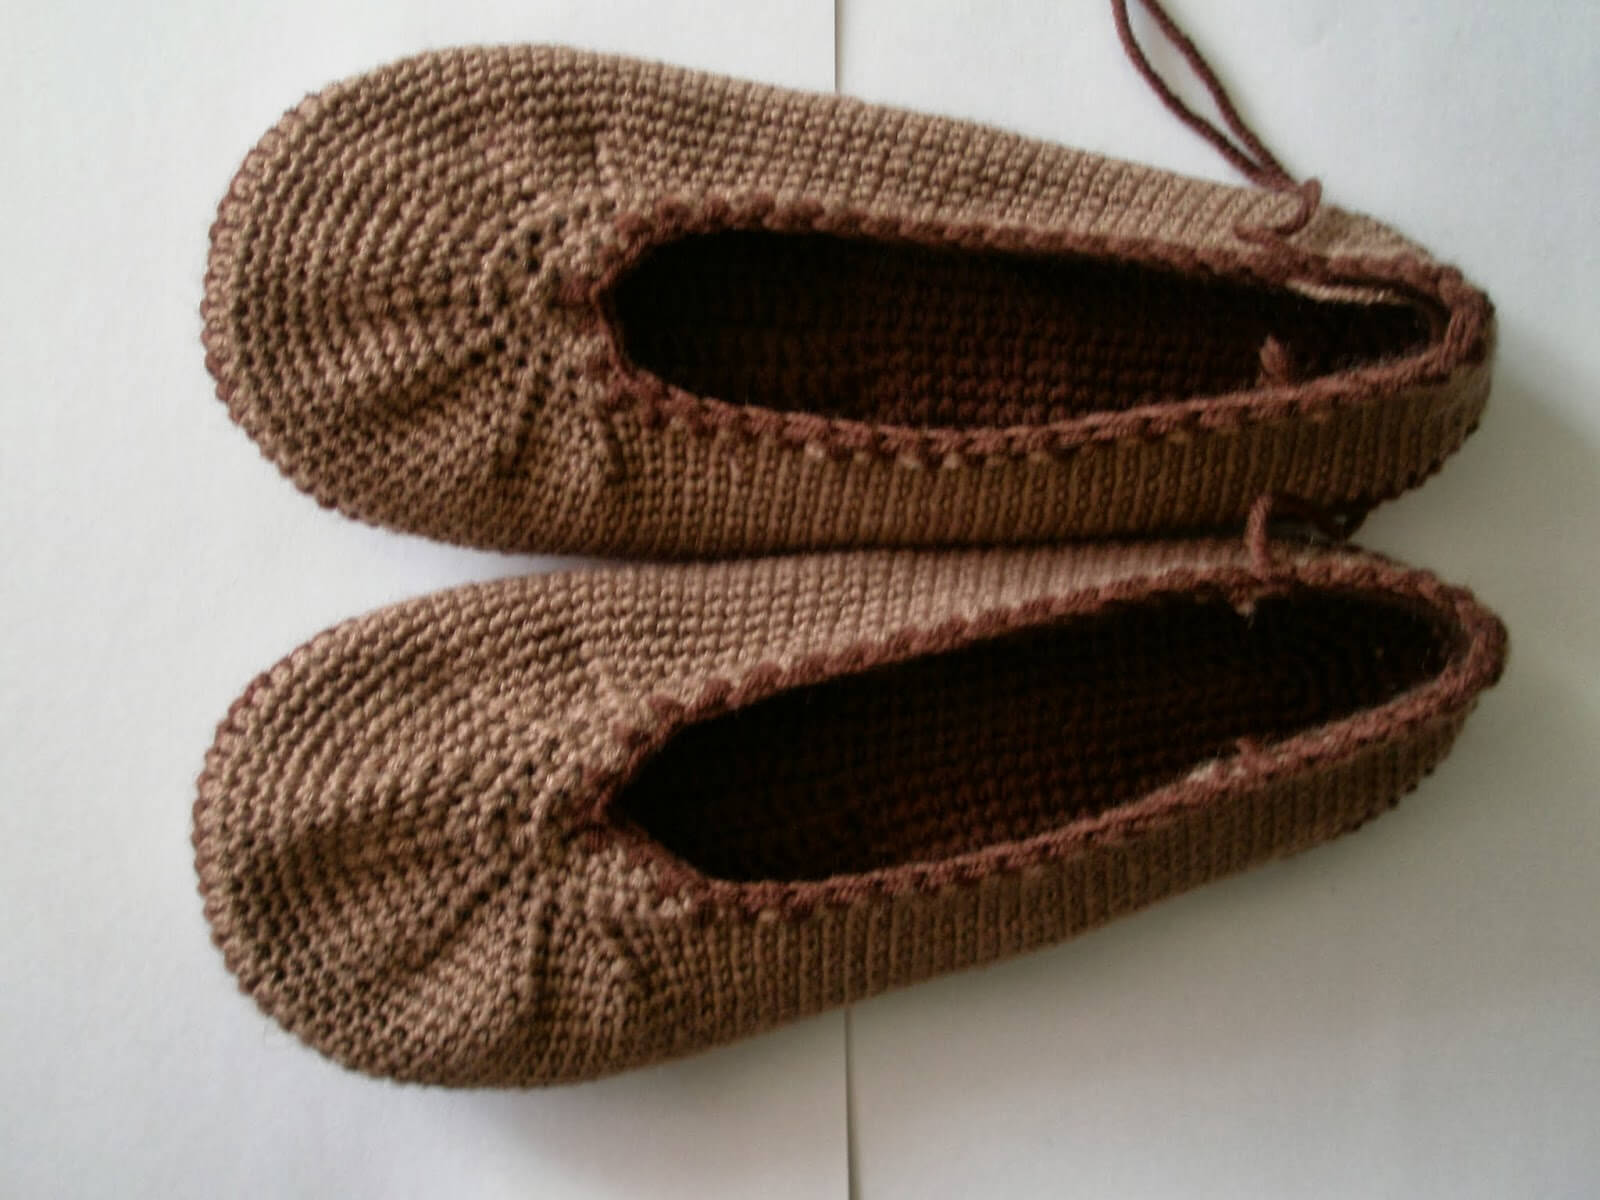 we can see this step by step made here in this sandal of crochet friends  making a vow in the sole of the sandal  the crochet pattern diagram could  not get